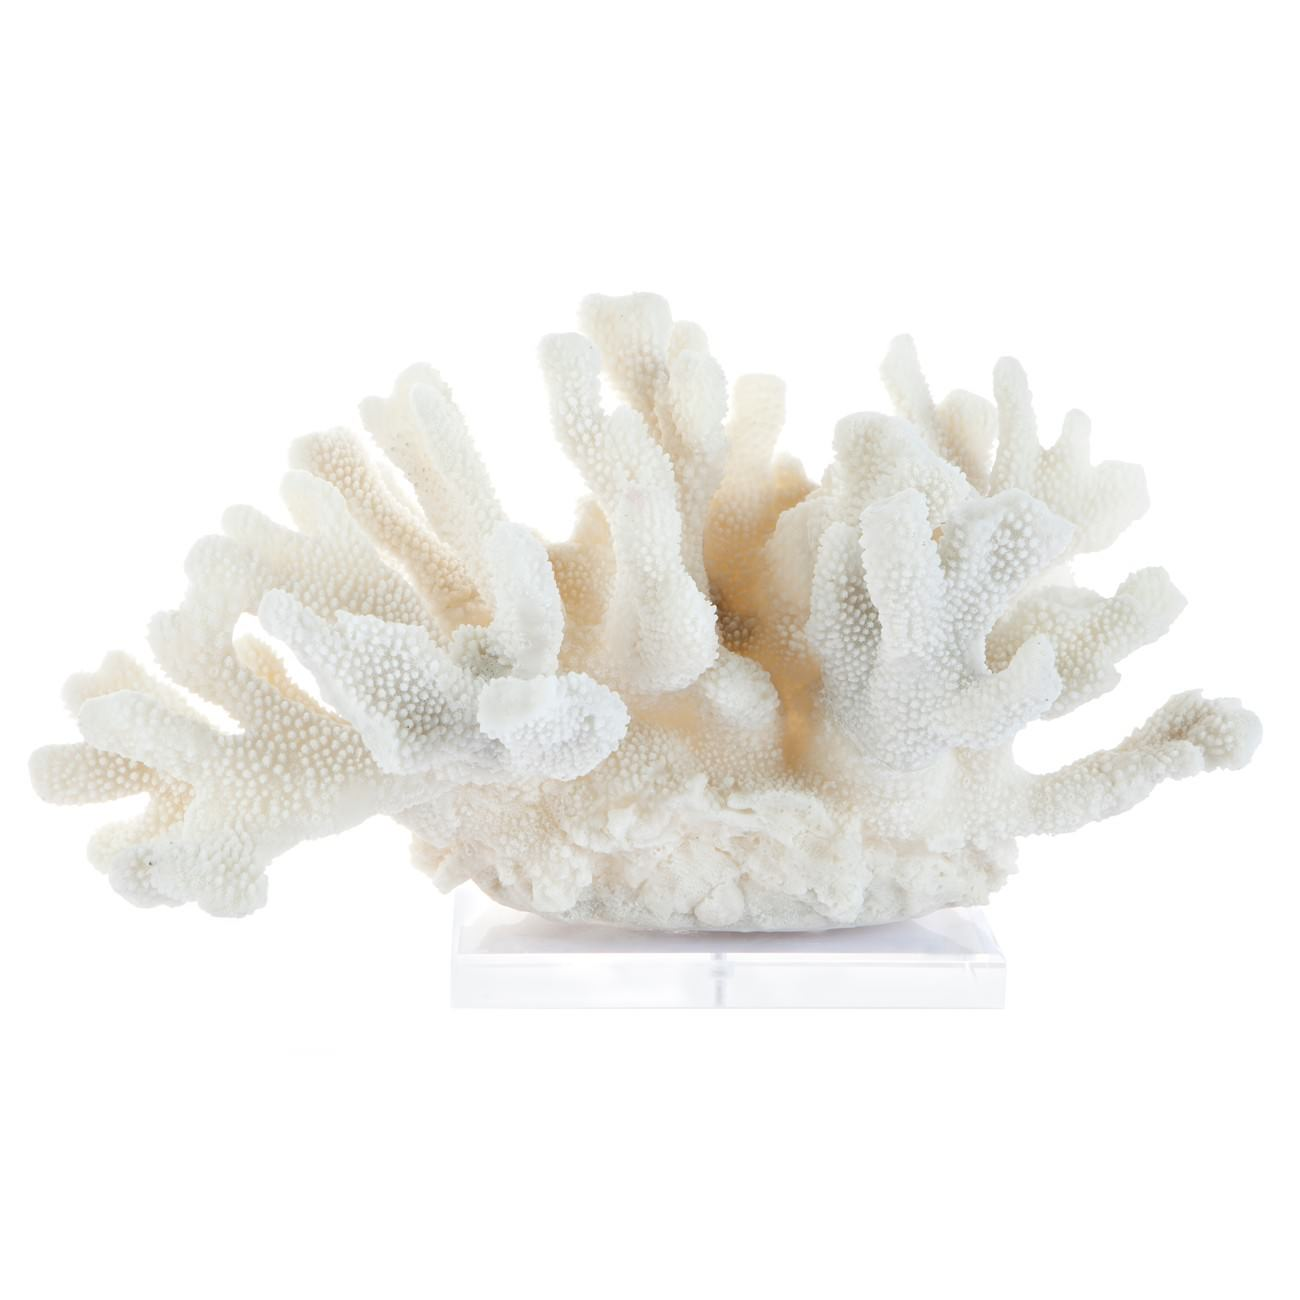 Cairns Coral Sculpture, Large, White